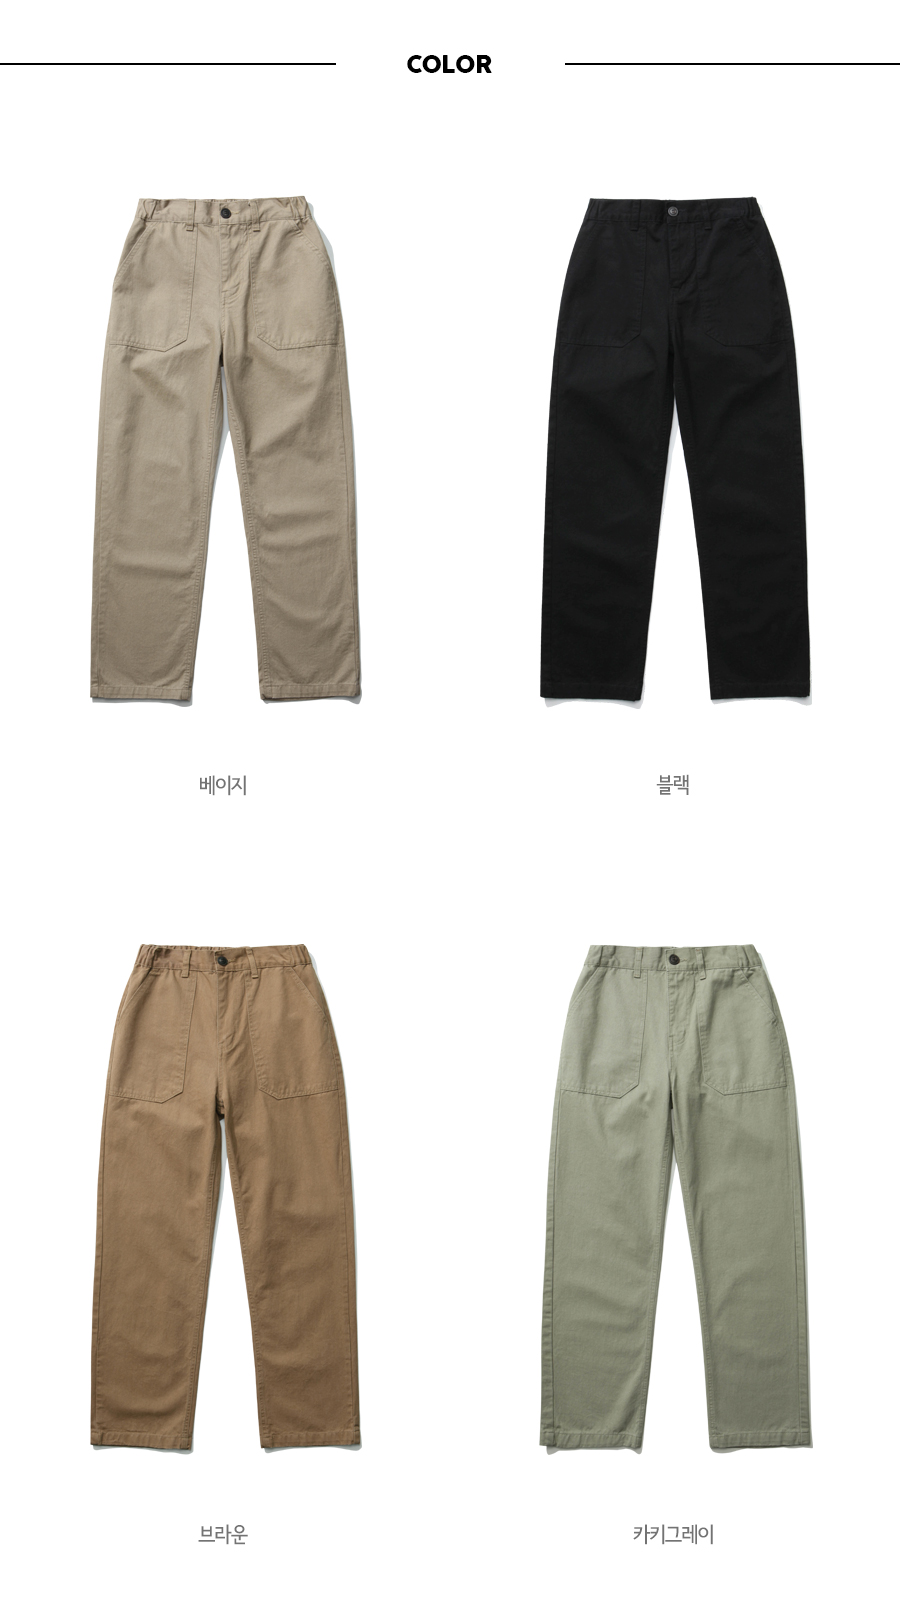 20190207_glory_cotton_pants_color_kj.jpg